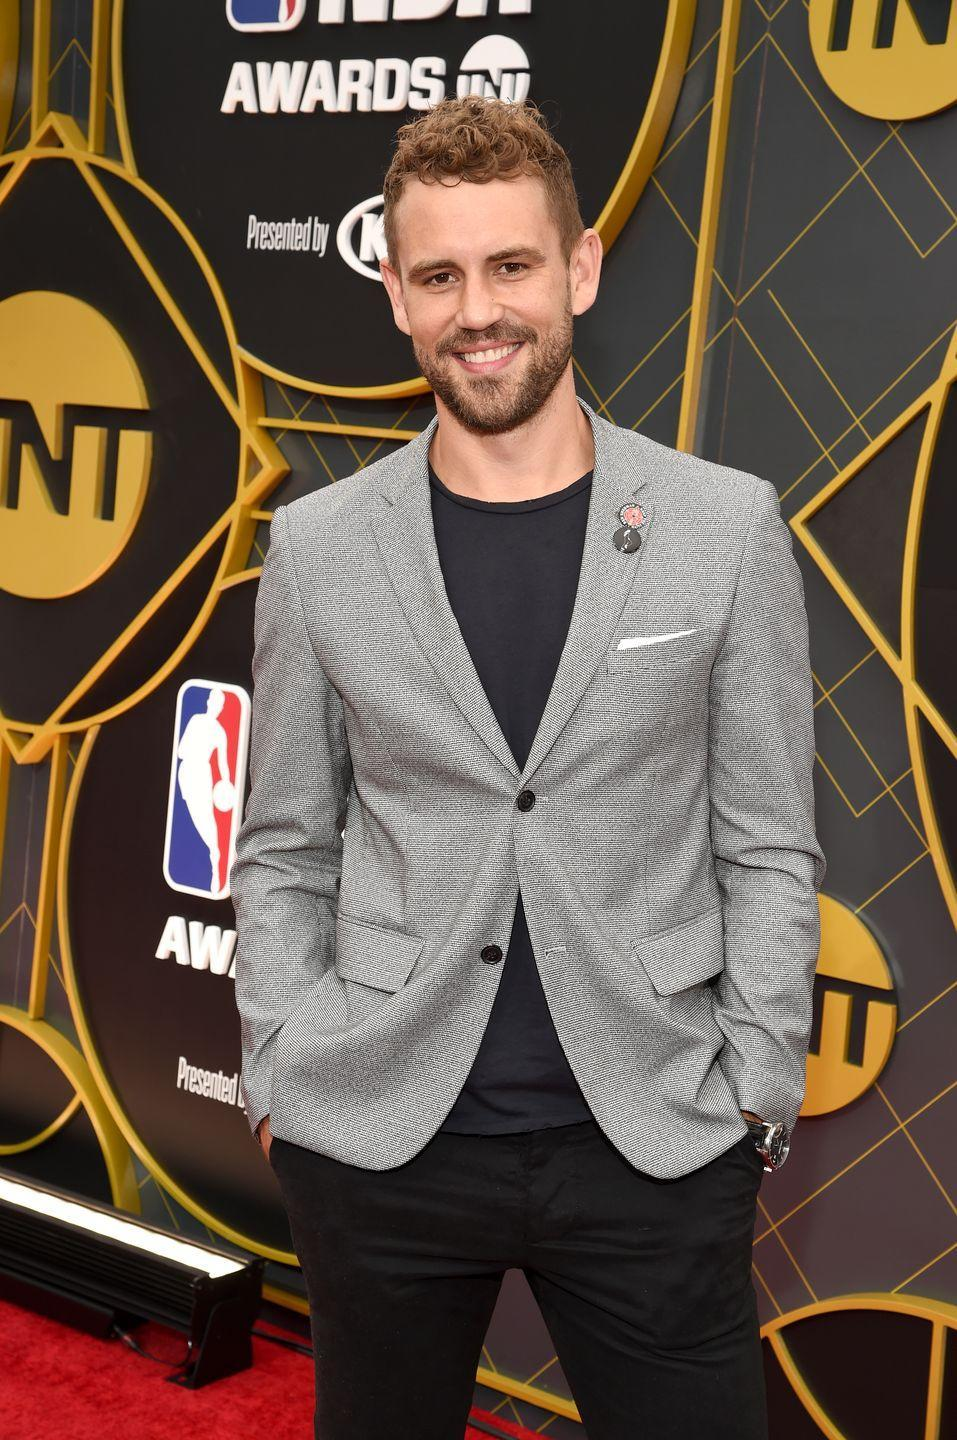 <p>After leaving paradise, Nick landed the coveted lead spot on <em>The Bachelor </em>and proposed to contestant Vanessa Grimaldi at the end of his season in 2017. However, the two parted ways the following year. </p>